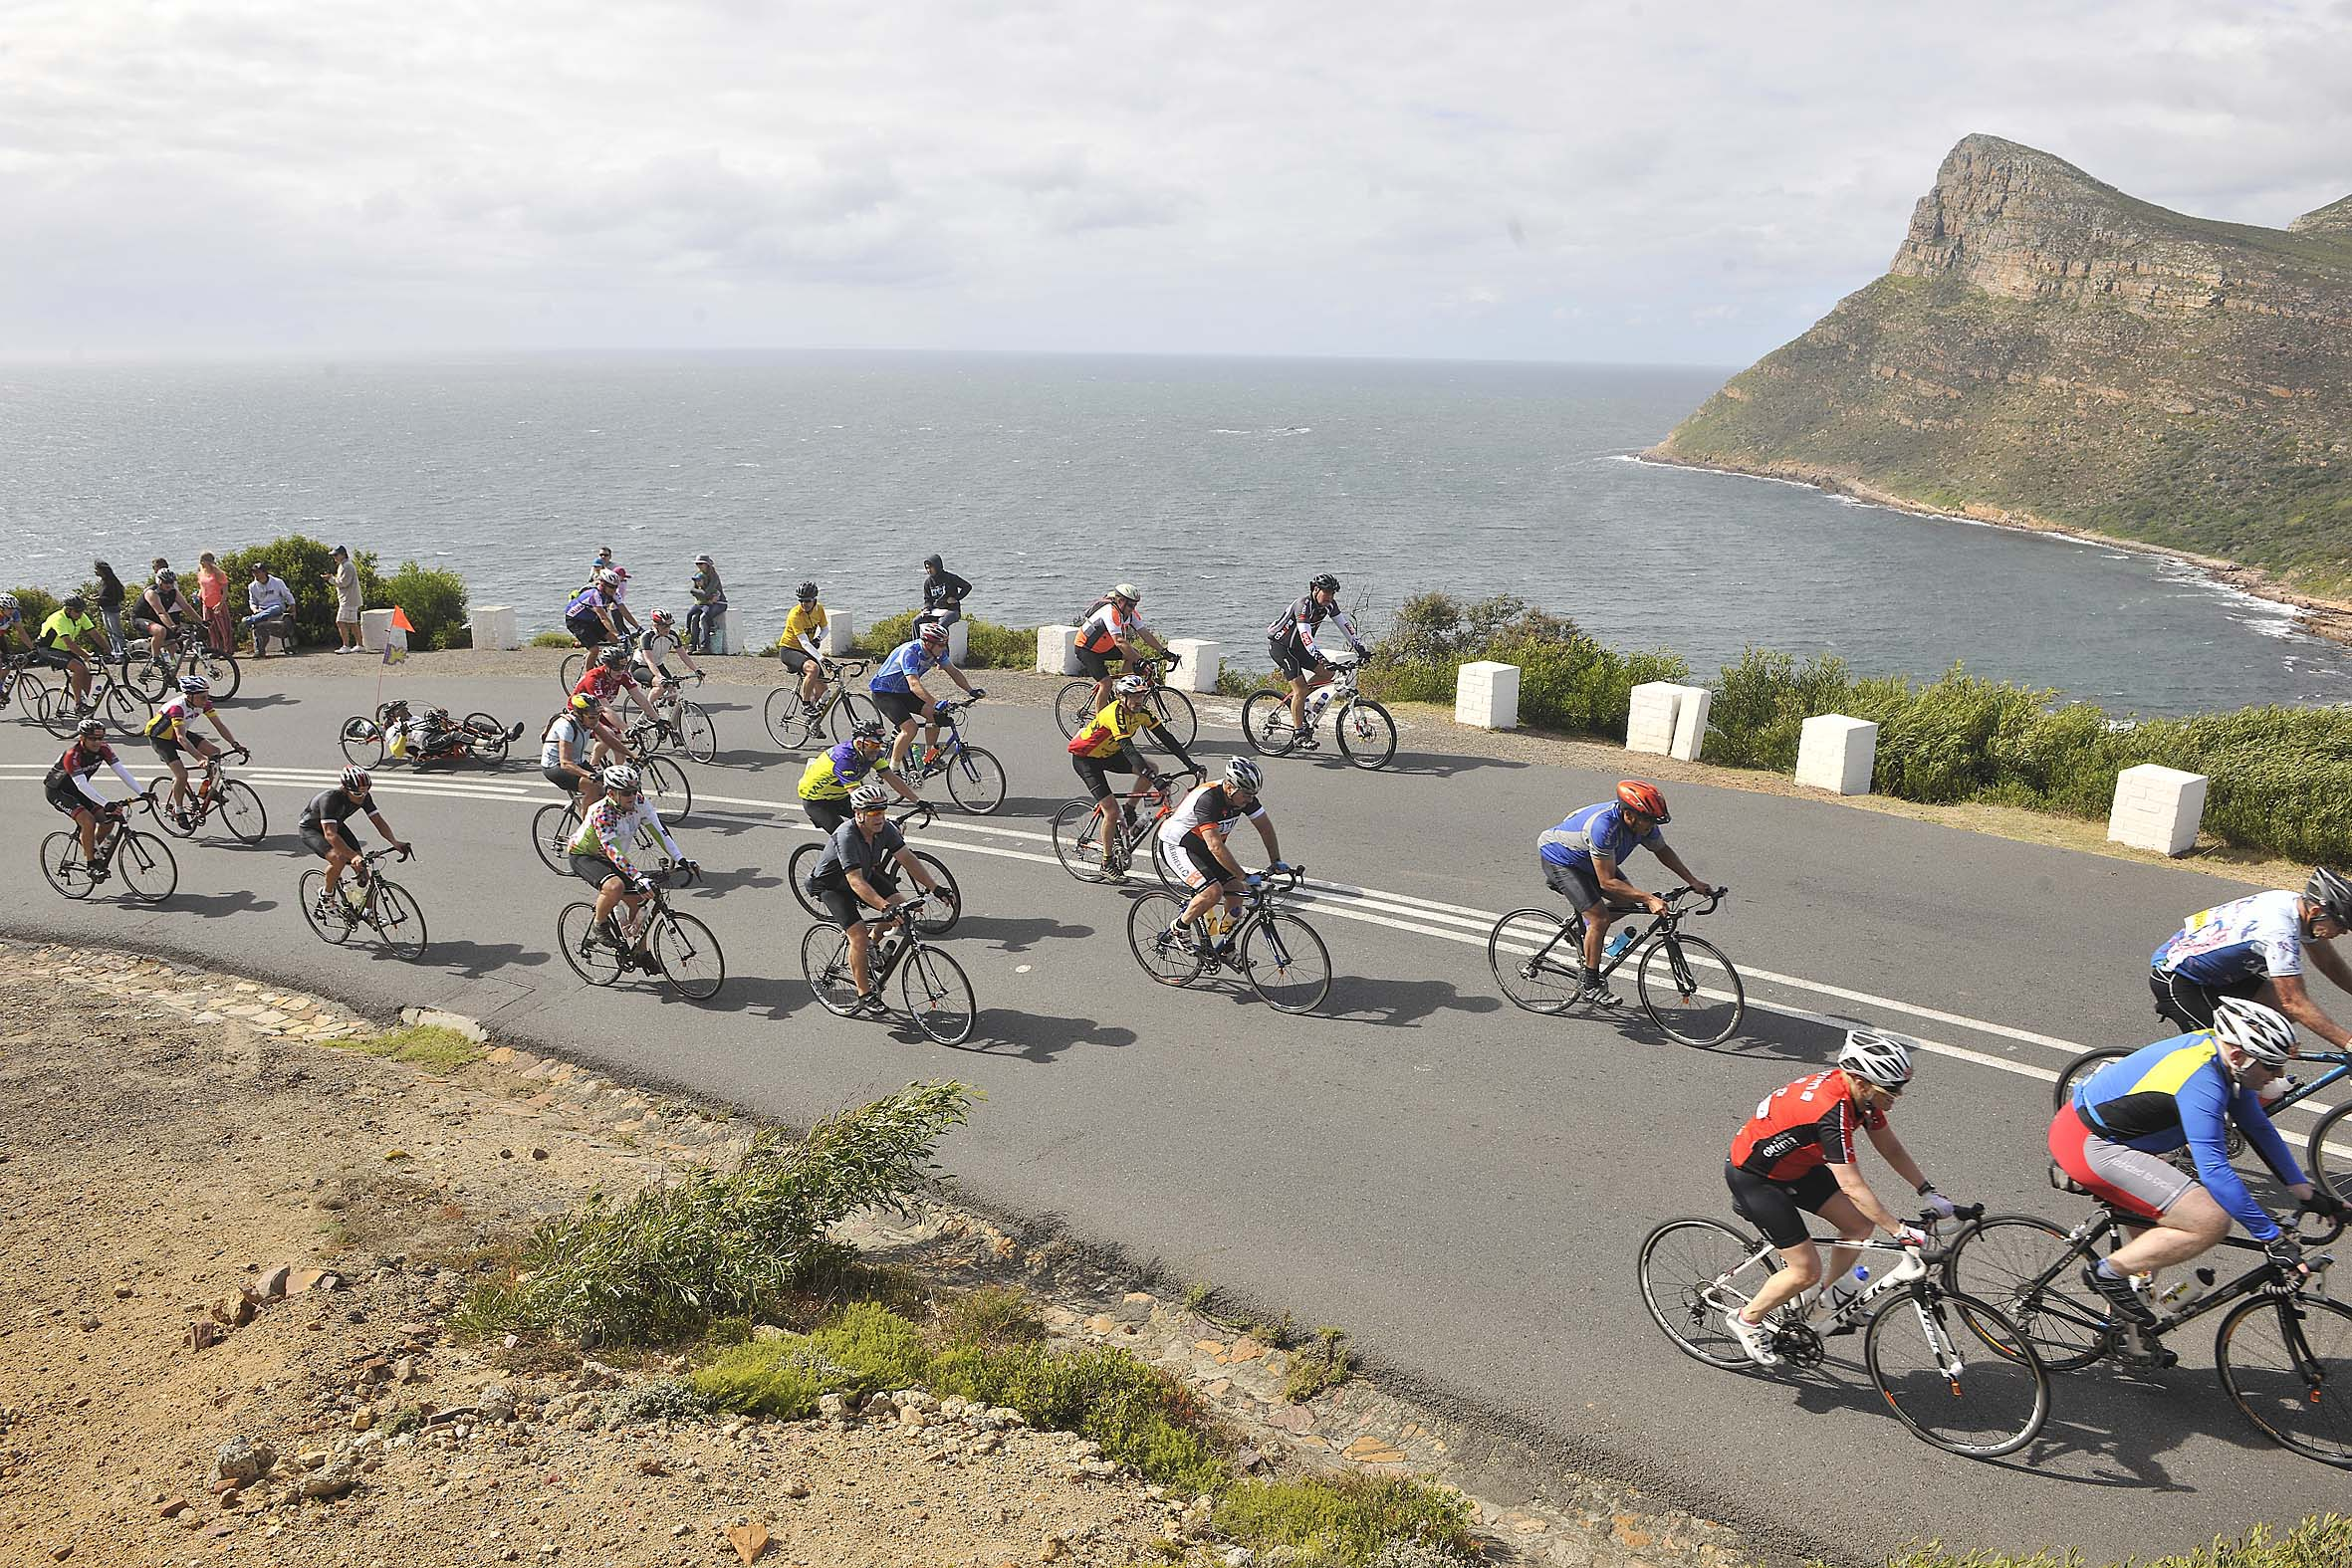 Photograph courtesy of City of Cape Town.